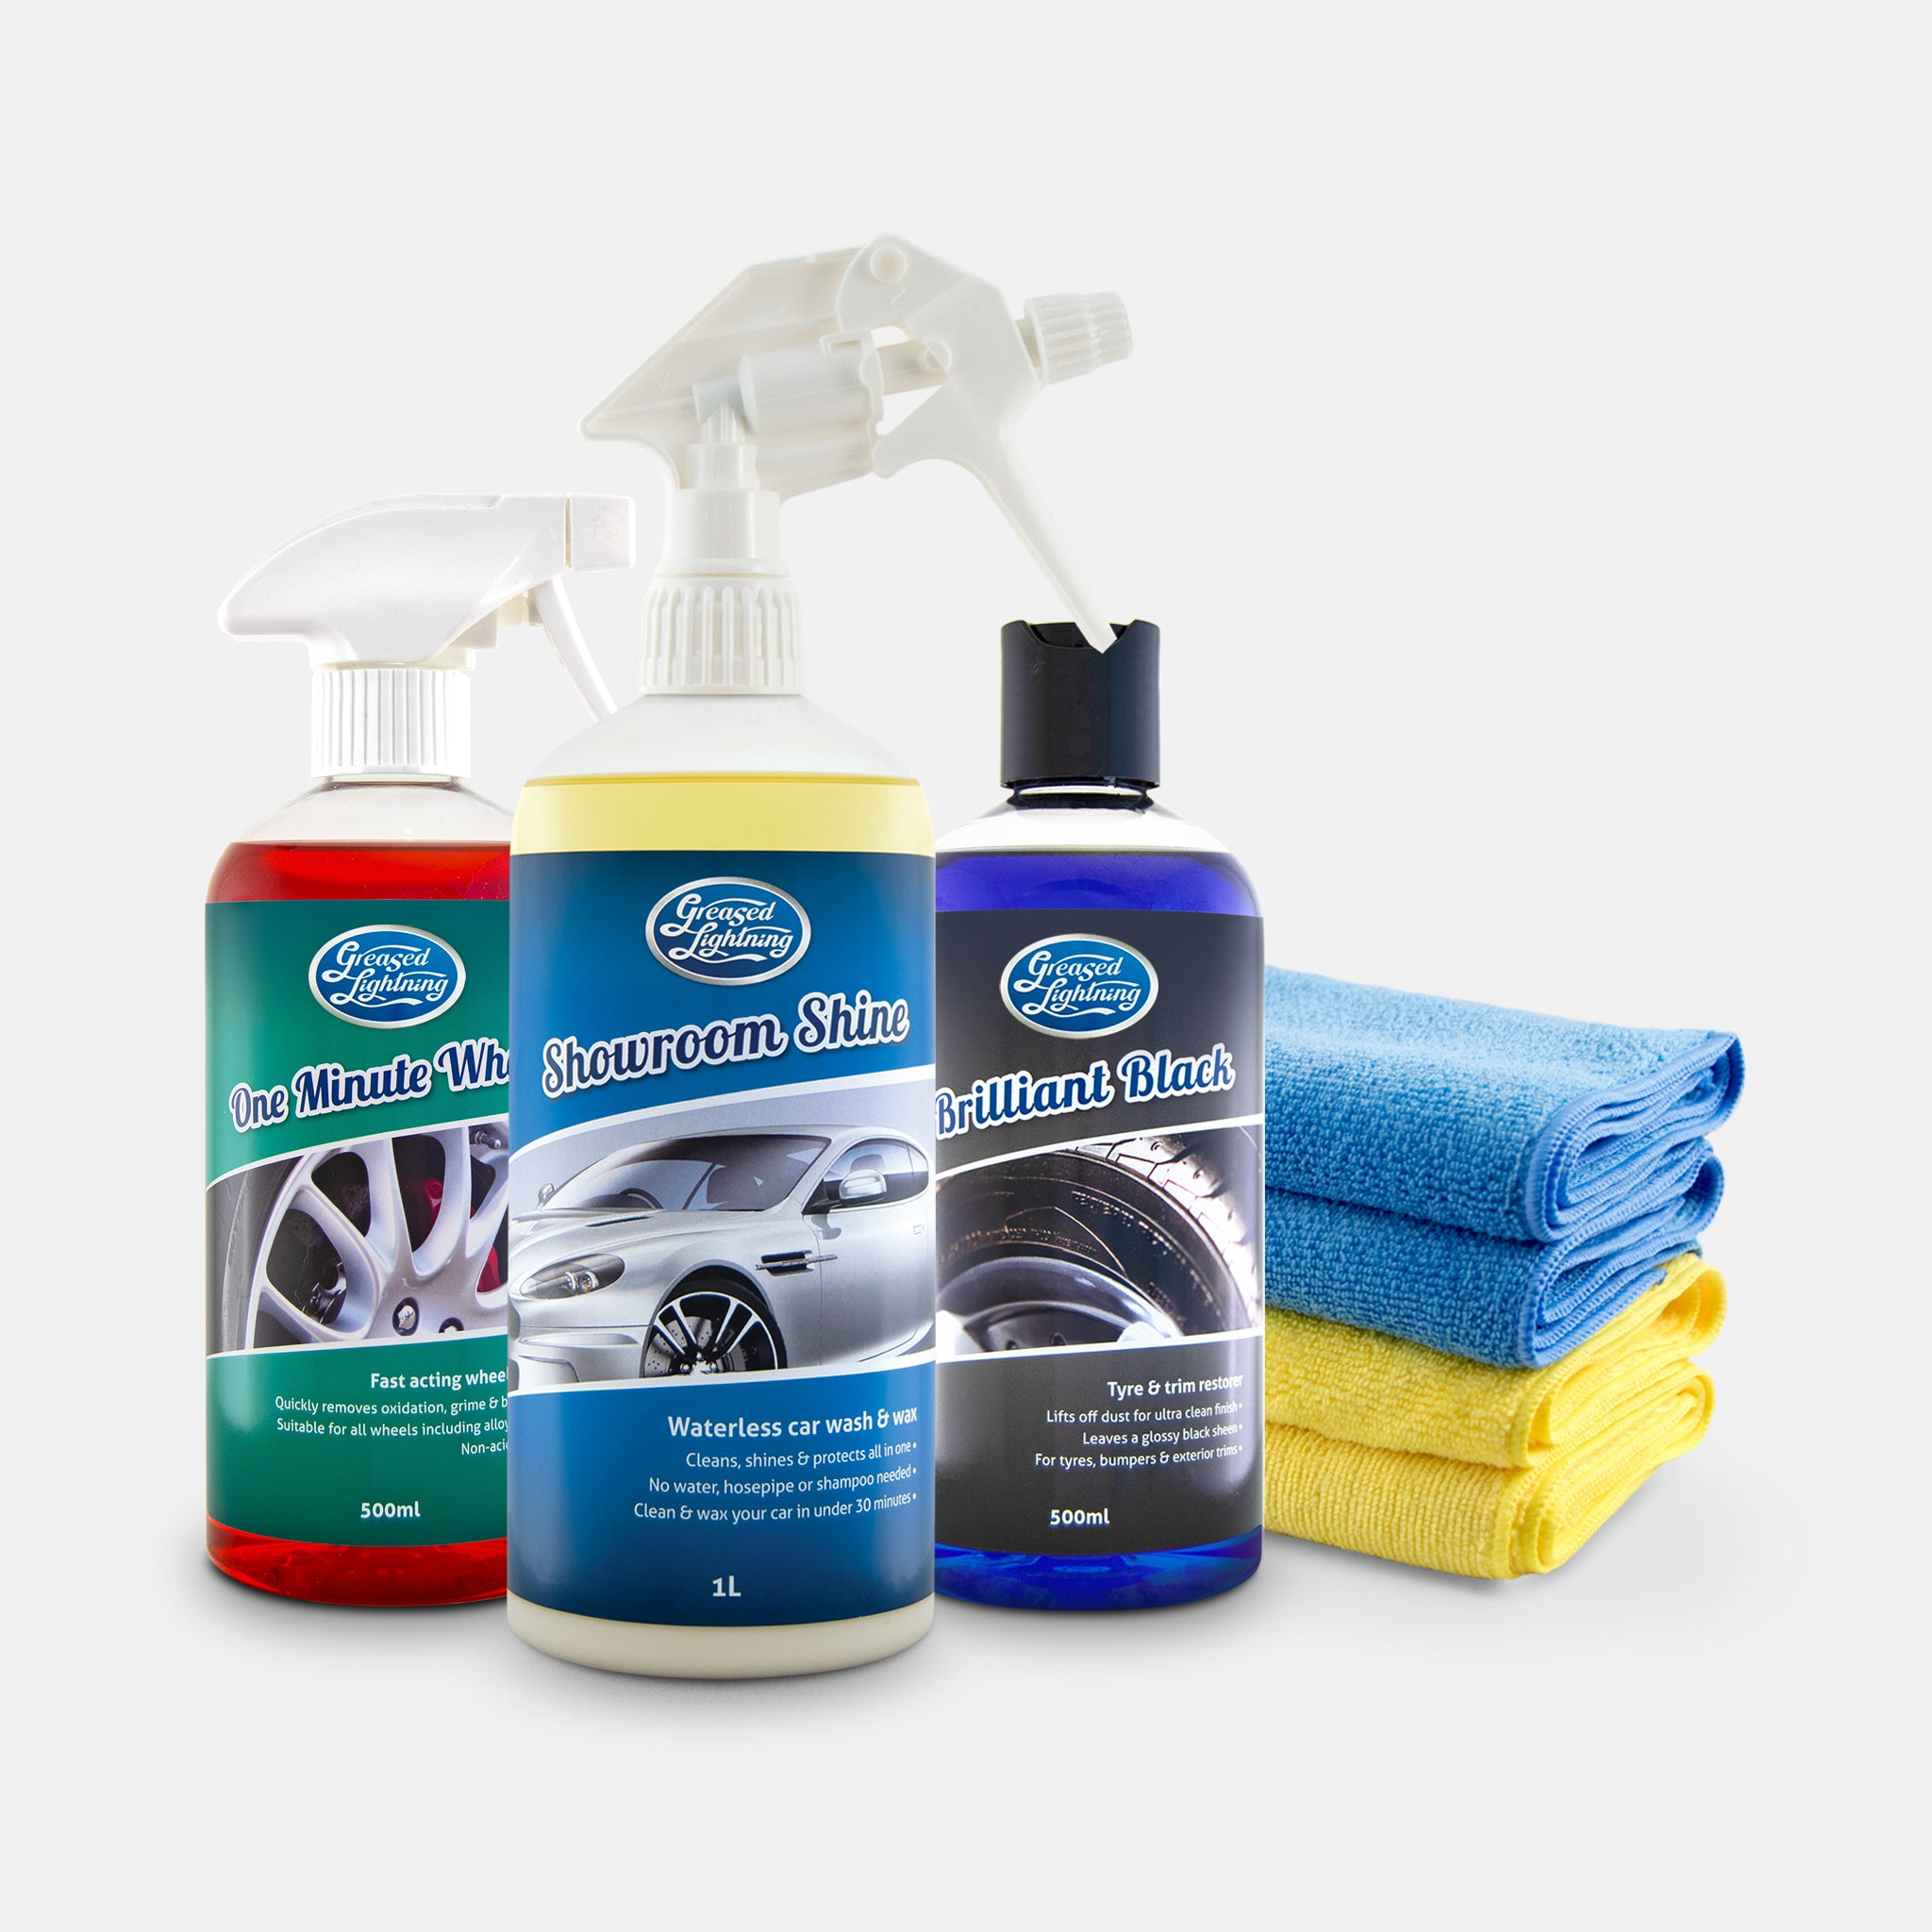 Greased Lightning Exterior Valeting Car Care Bundle Pack